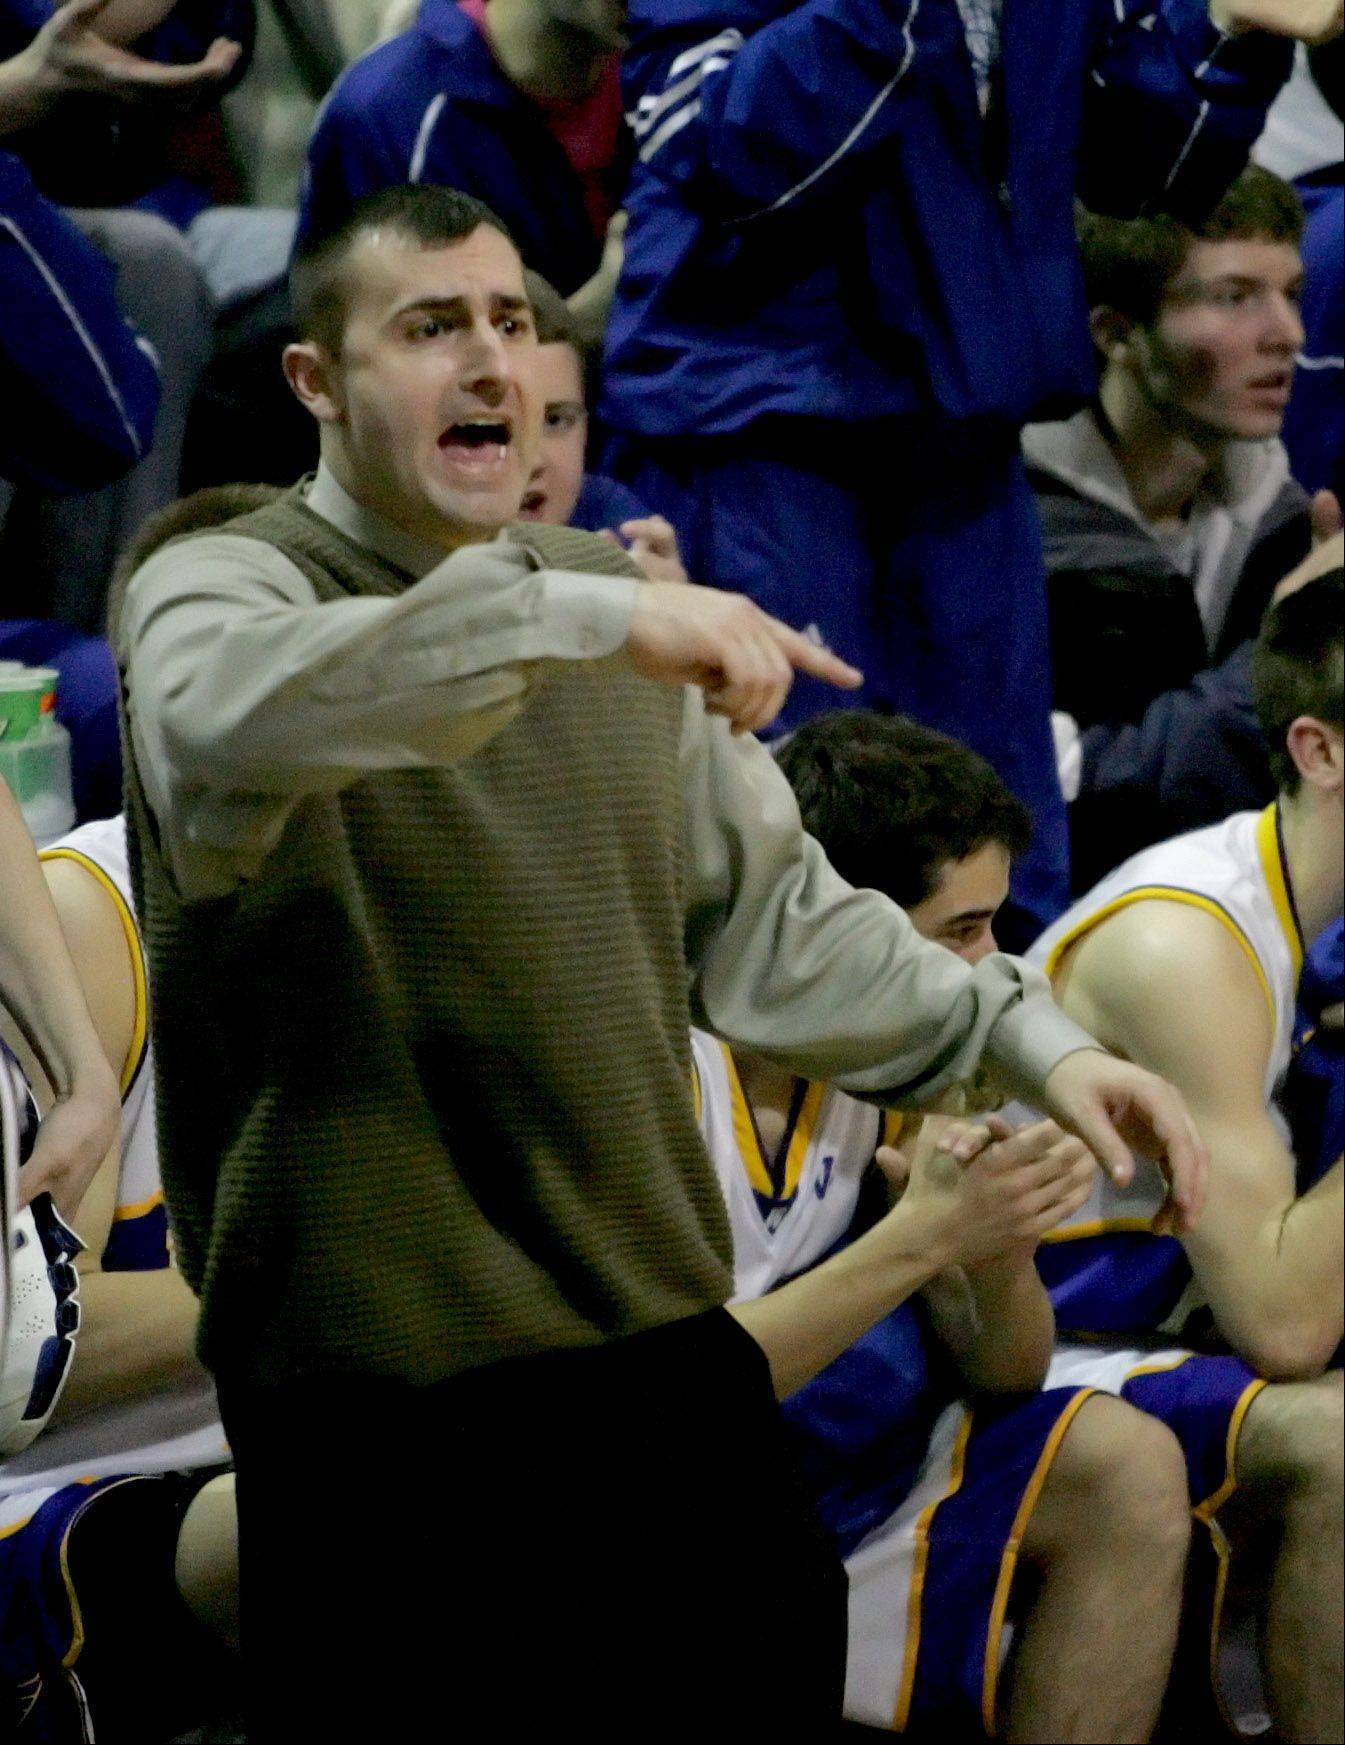 Jim Nazos has left Wheaton North to take over the boys basketball program at Batavia. Nazos replaces IBCA Hall of Famer Jim Roberts, who resigned to spend more time with his family.